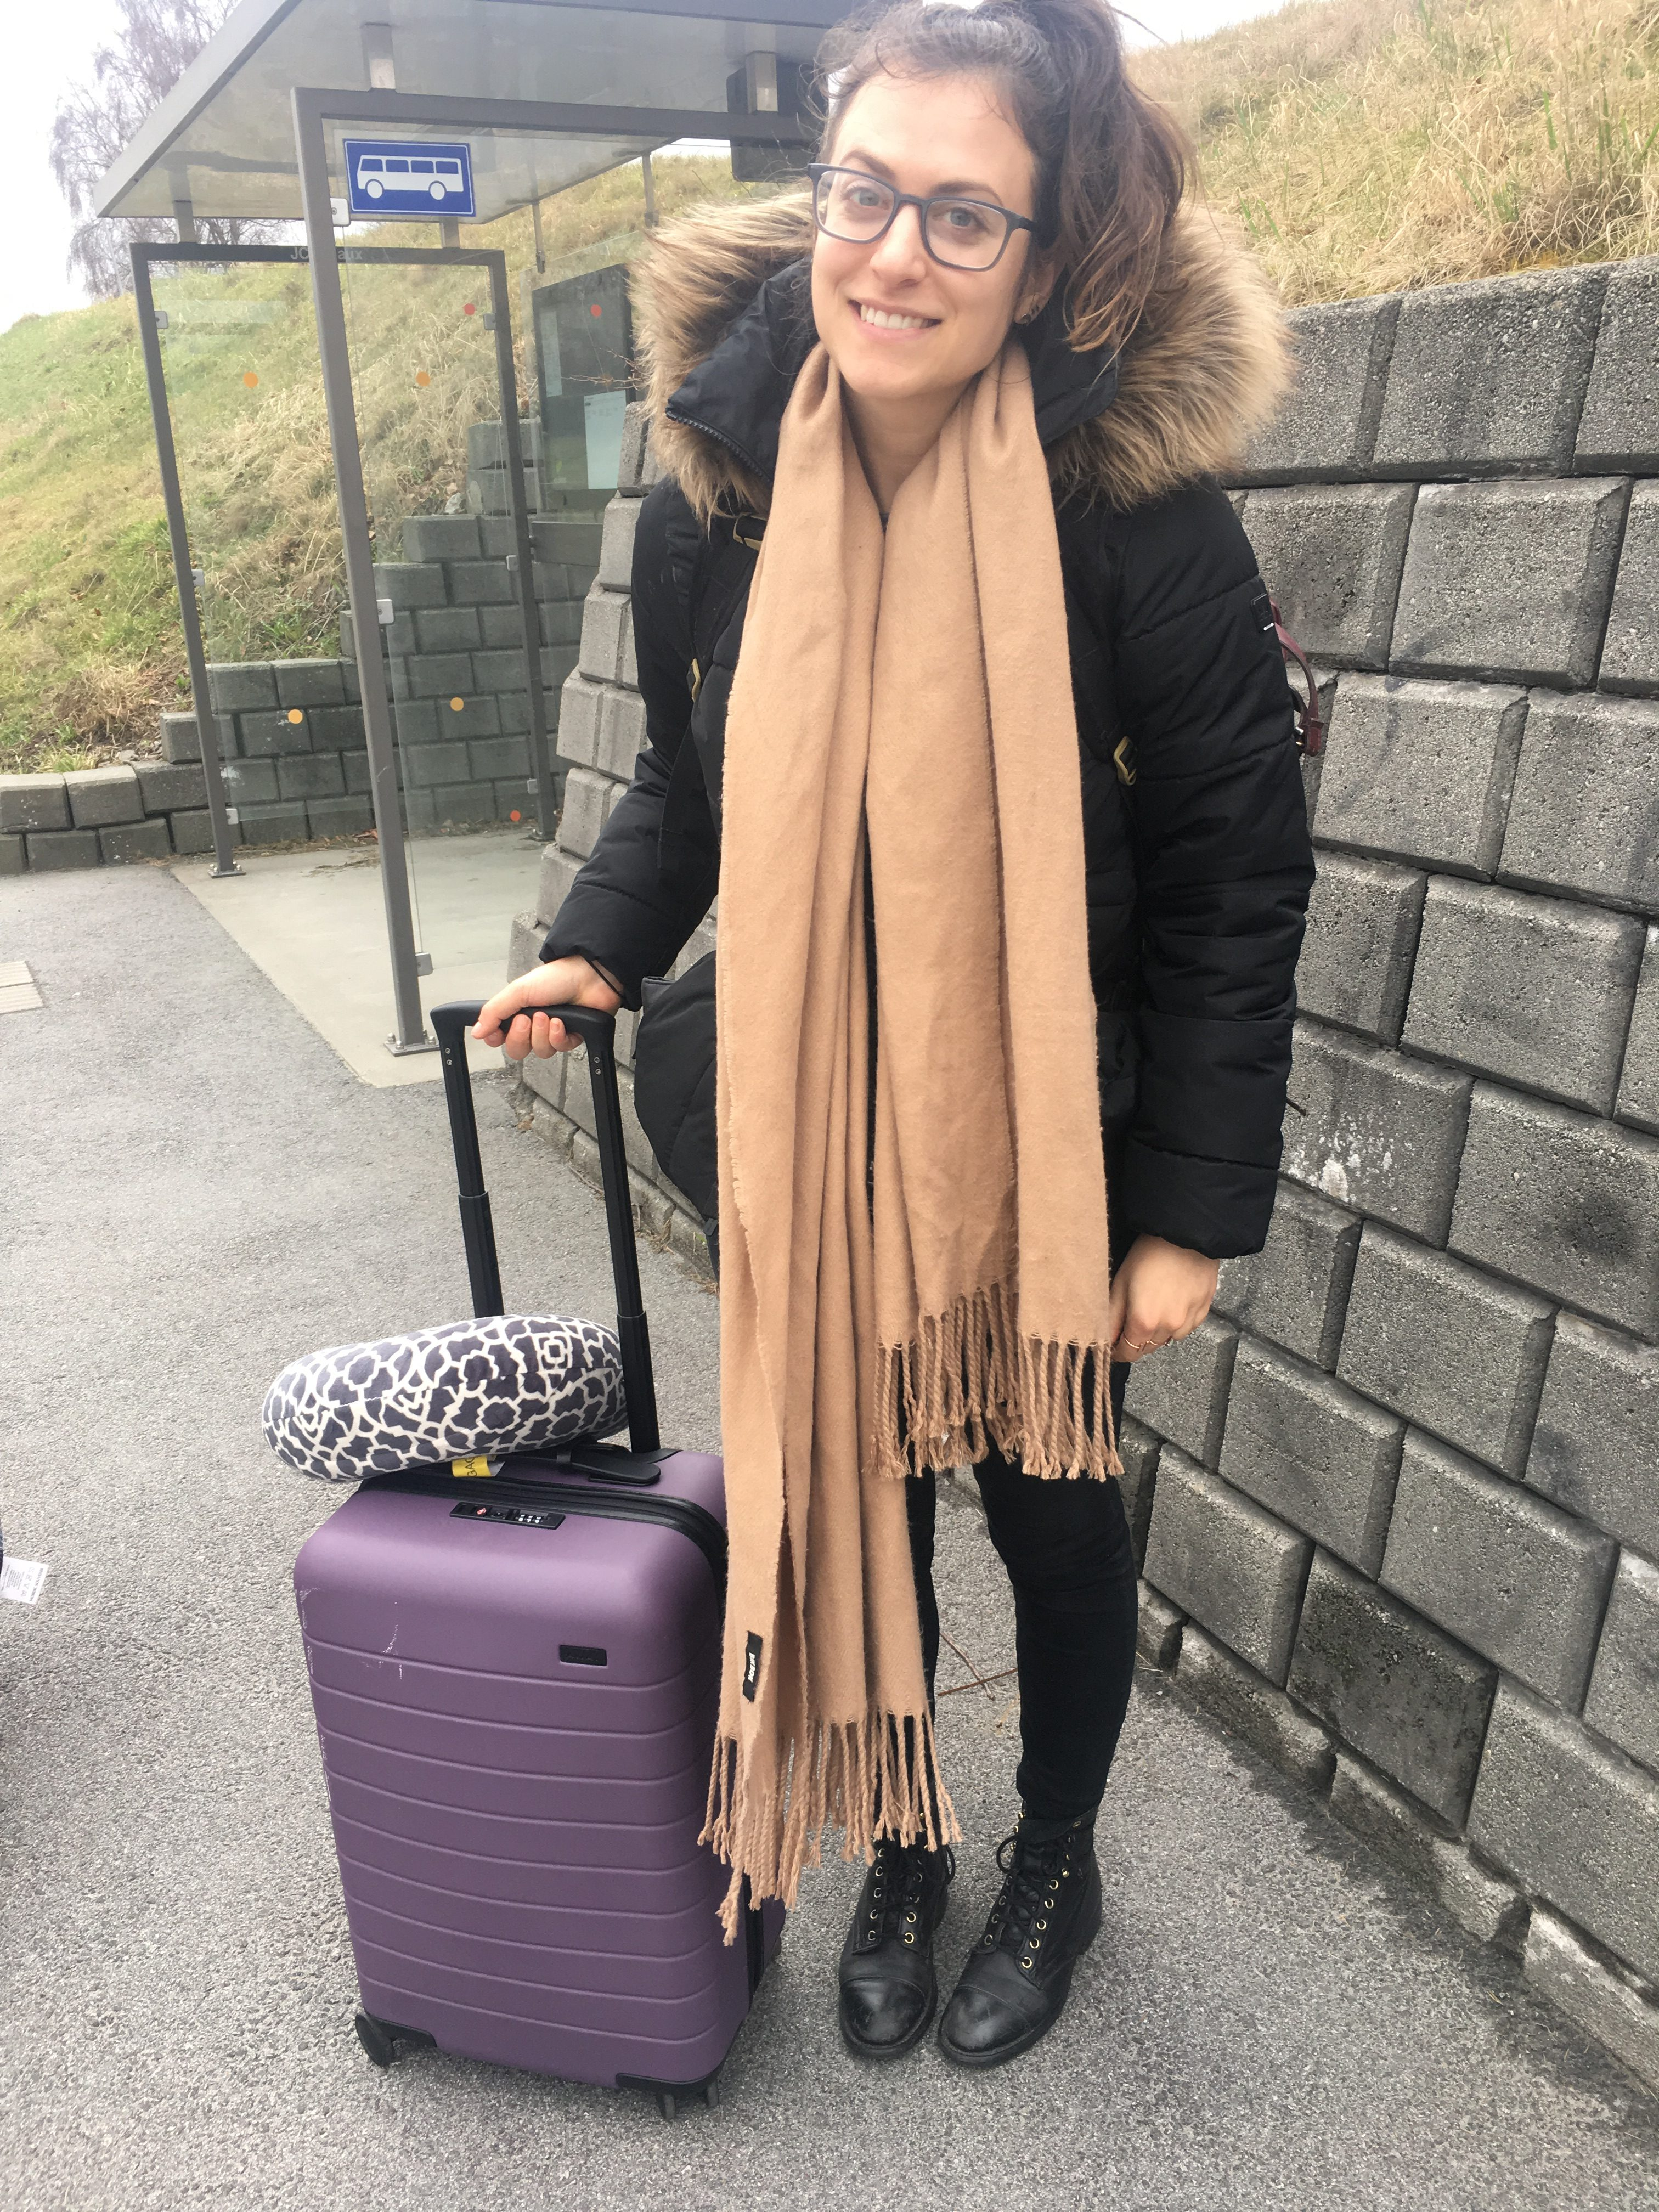 Female Packing list for 3 months of travel in Europe in winter and spring with just a carry on suitcase